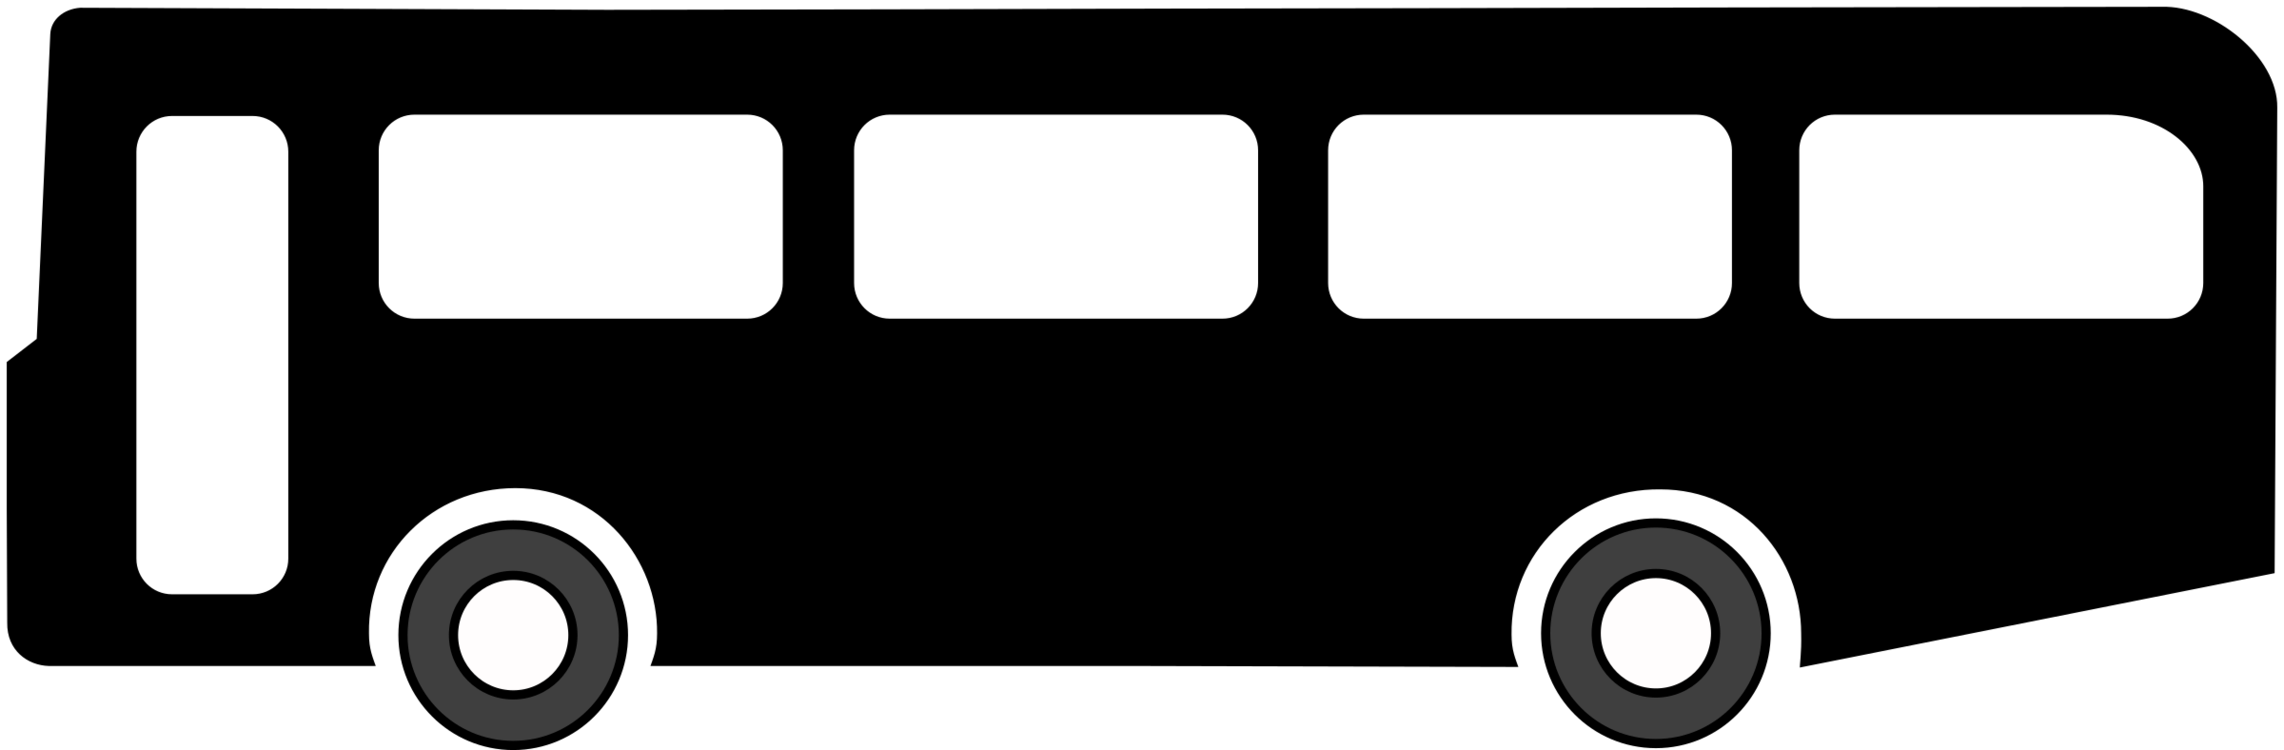 Free clipart black and white data transit banner Angle,Car,Motor Vehicle Vector Clipart - Free to modify, share, and ... banner